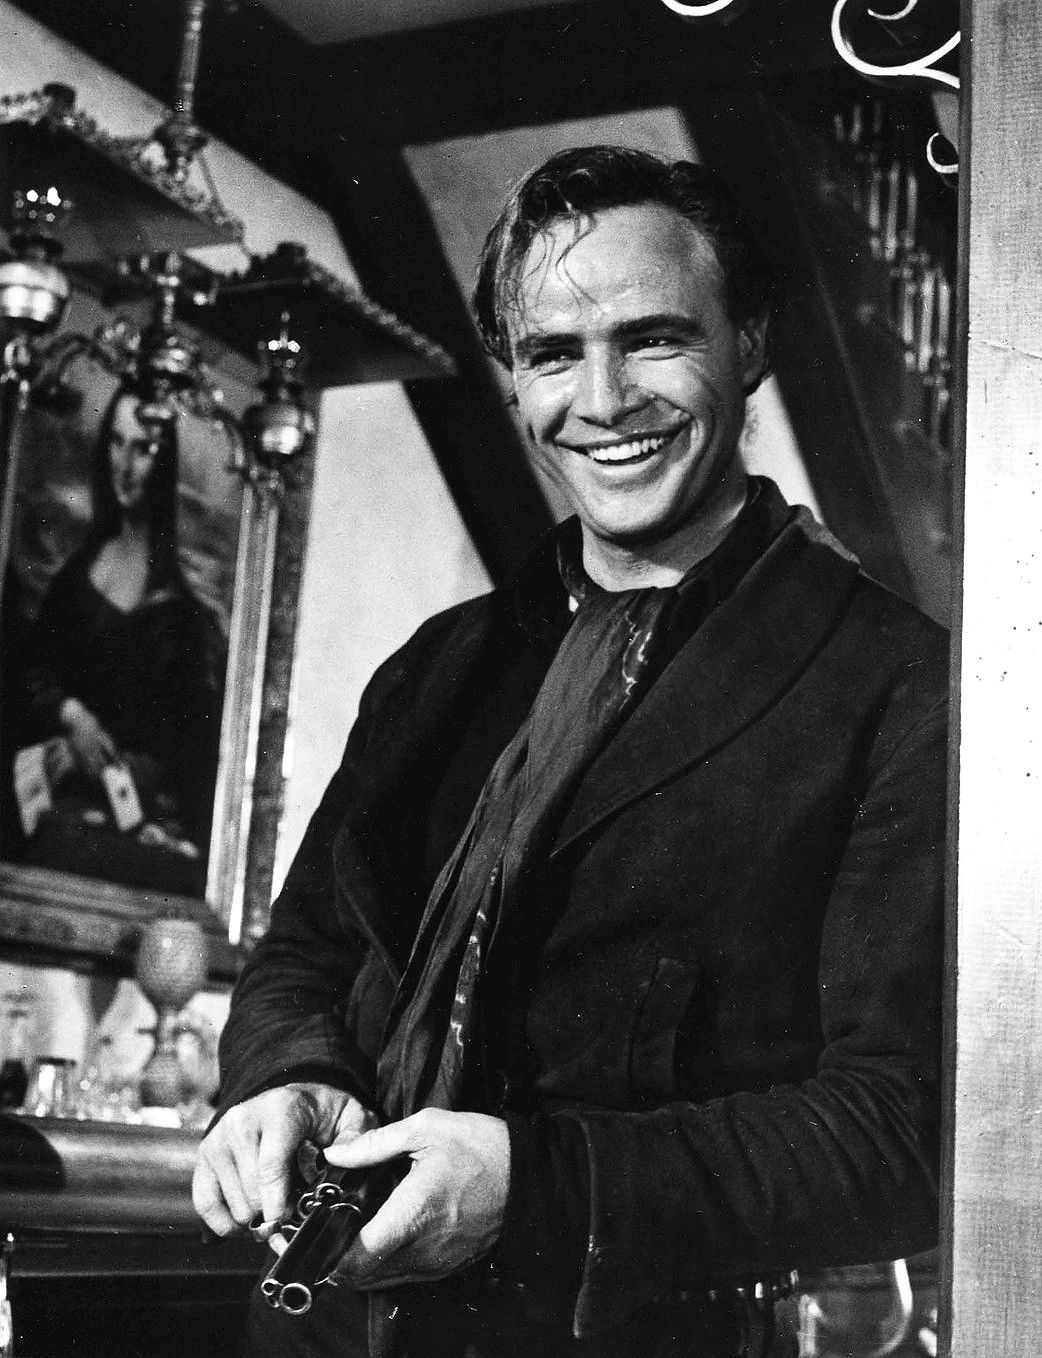 A Brando For Publicity Jacks1961 One Marlon In Still Eyed ordCxBe